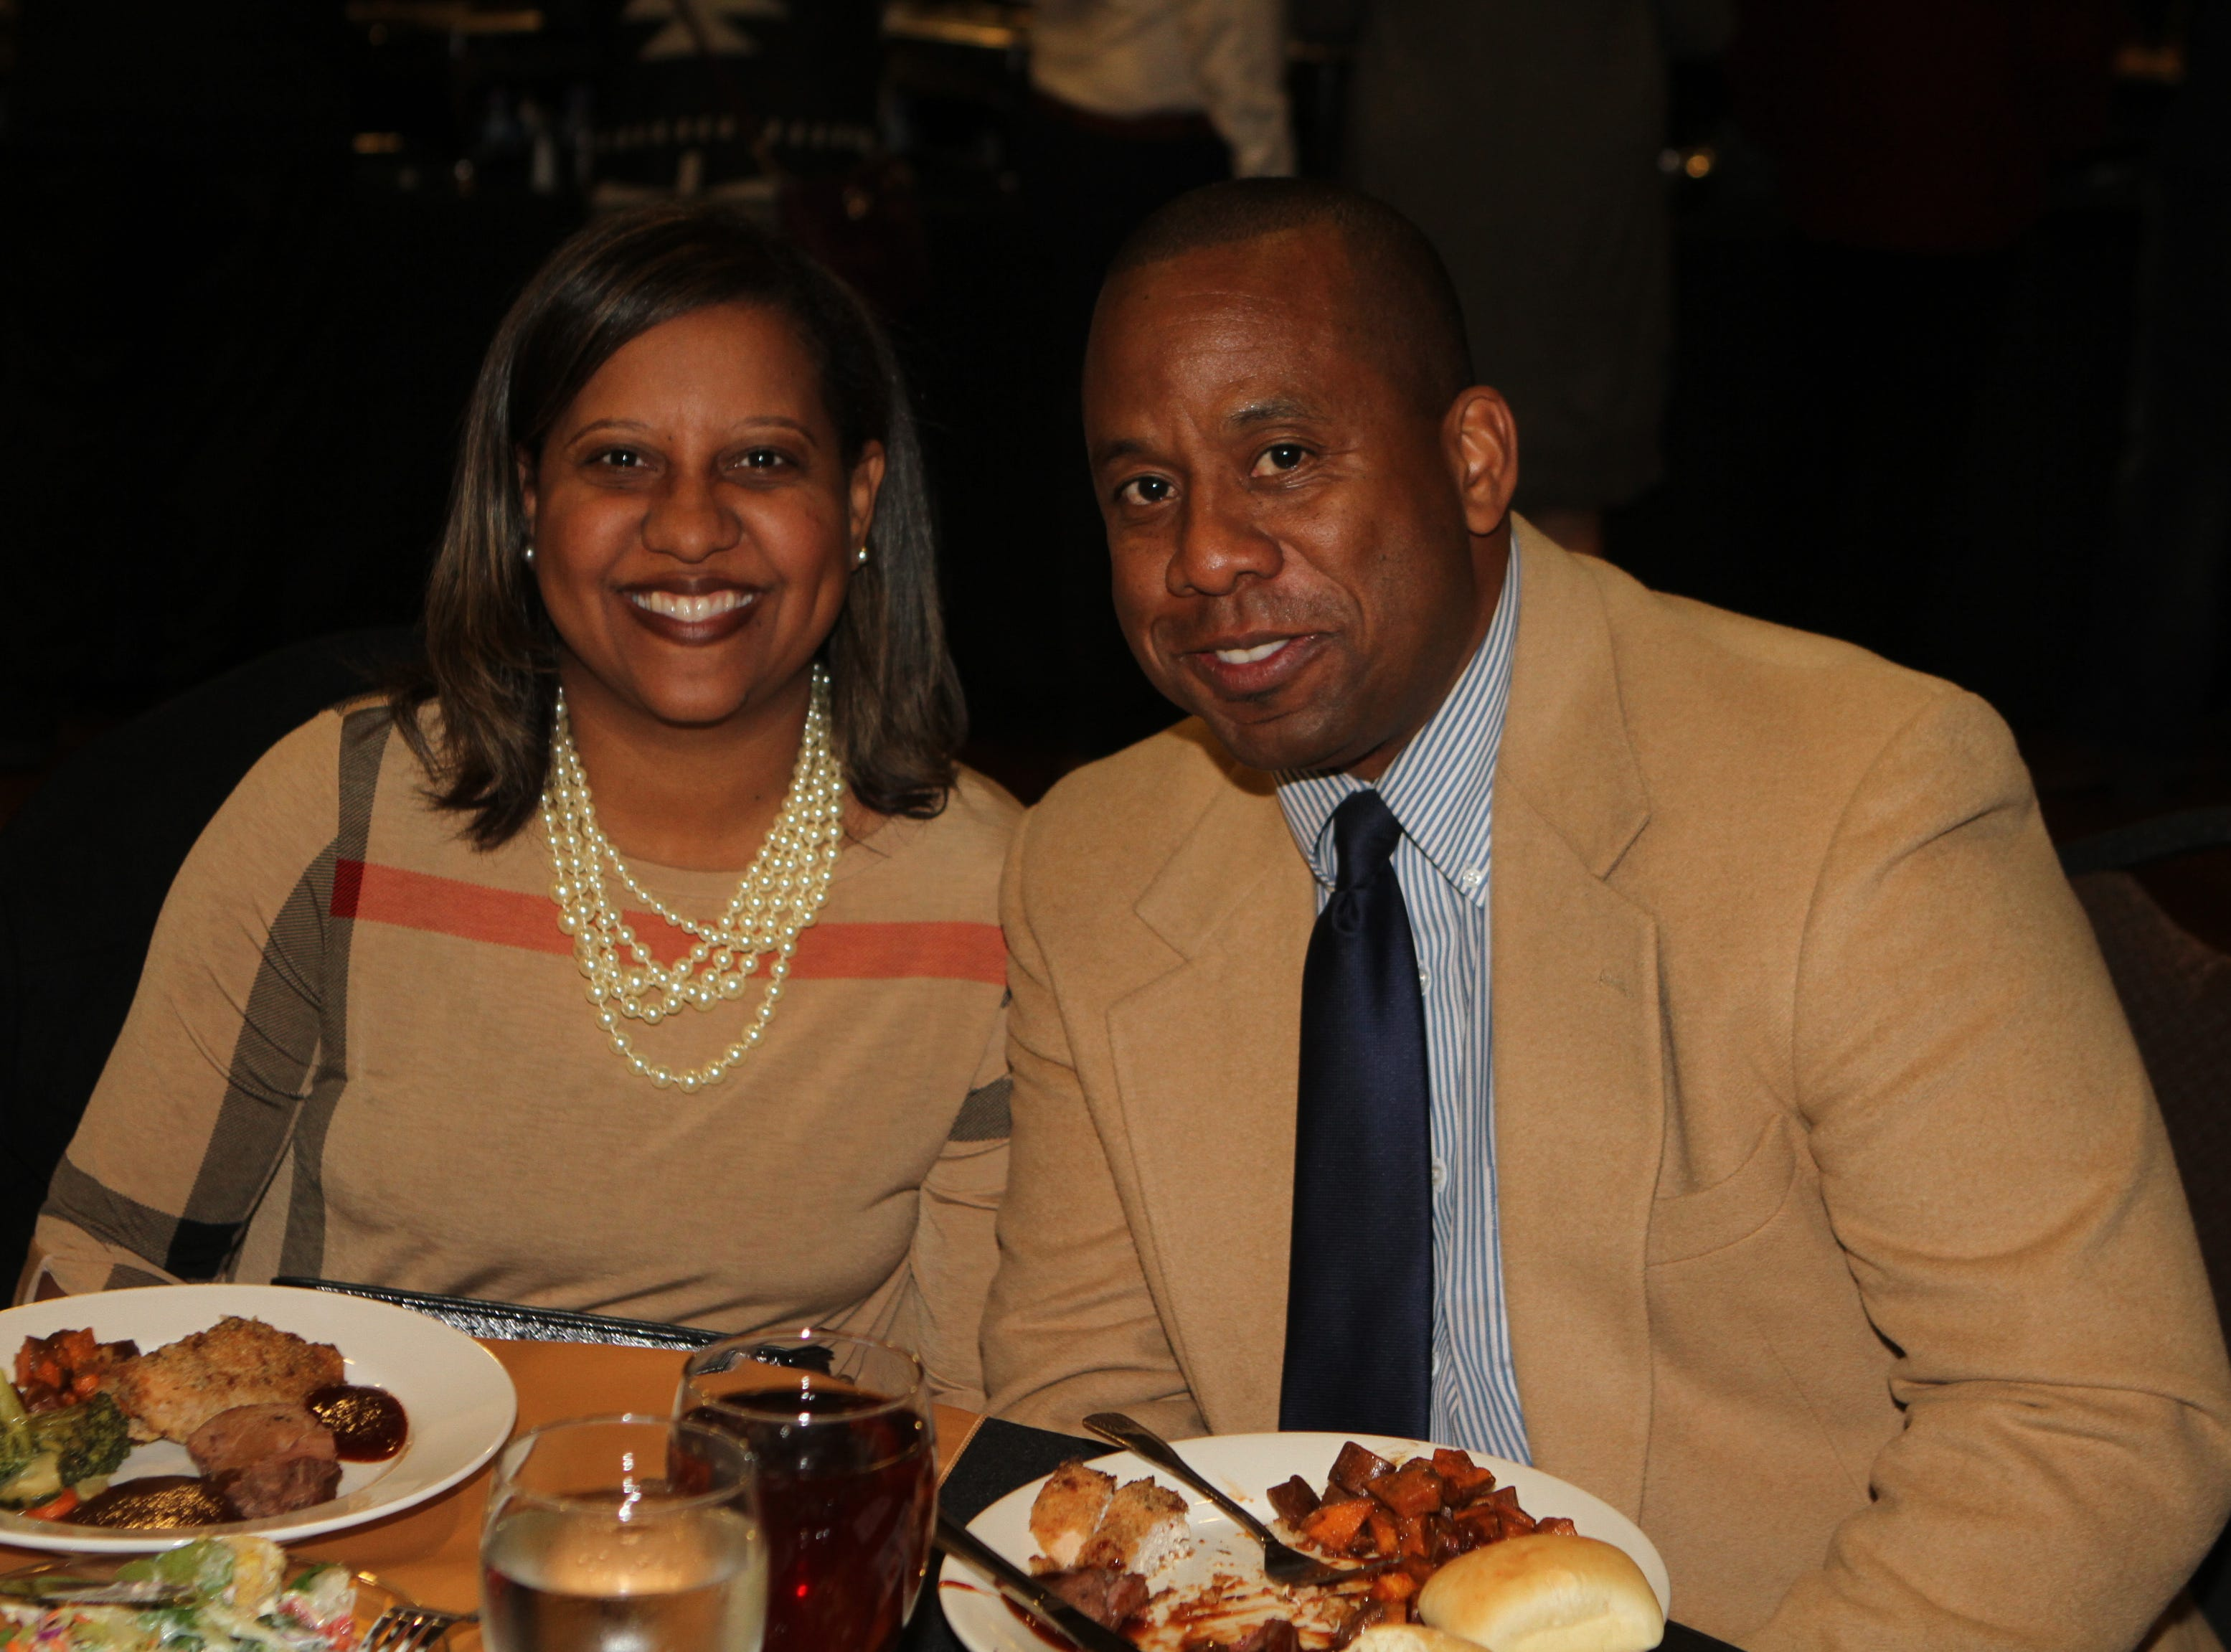 Kyla and Millard House II, CMCSS director of schools, at CMC Education Foundation's annual fundraiser Vision to Reality on Friday, November 2, 2018